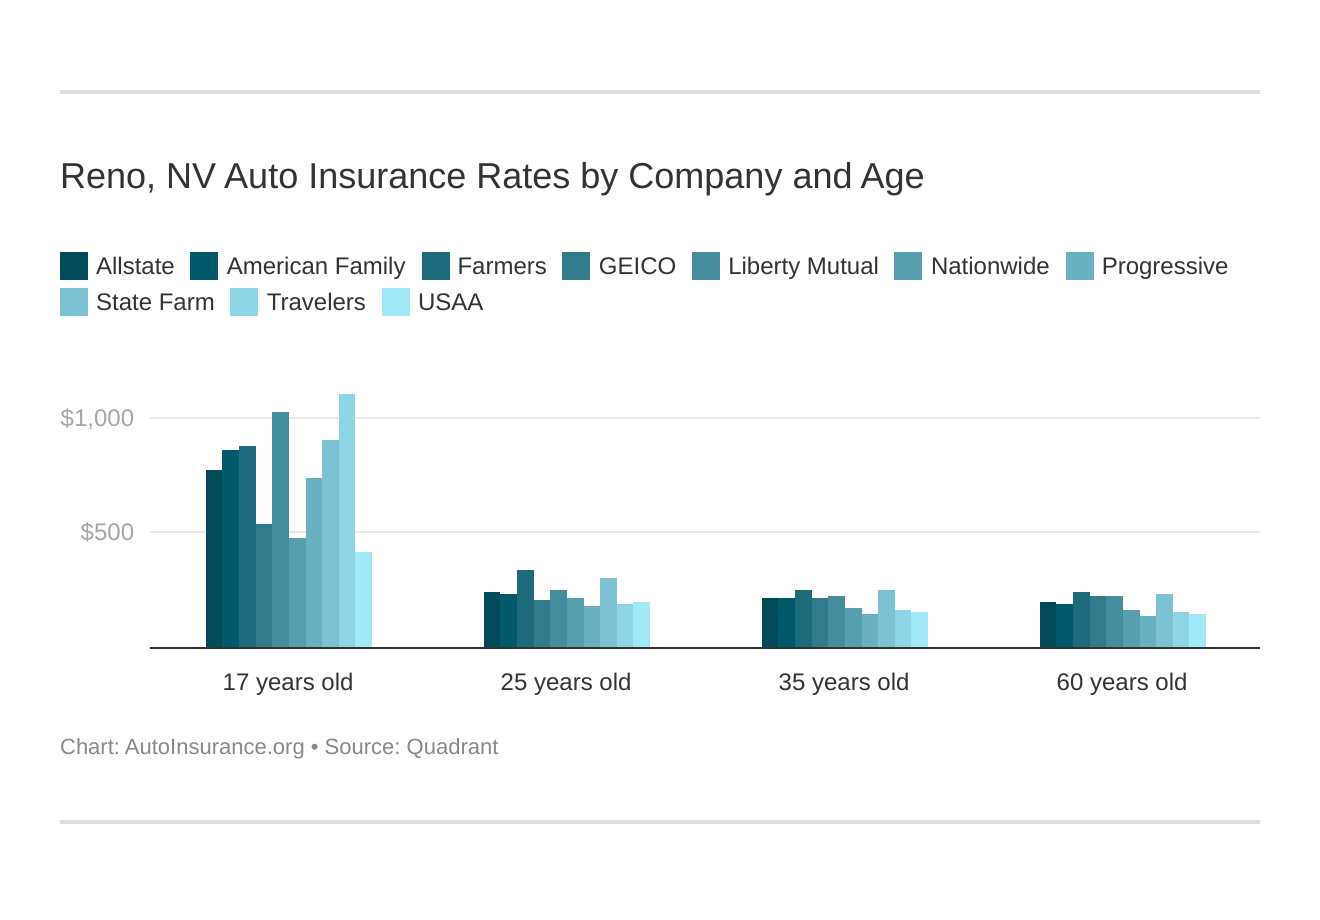 Reno, NV Auto Insurance Rates by Company and Age